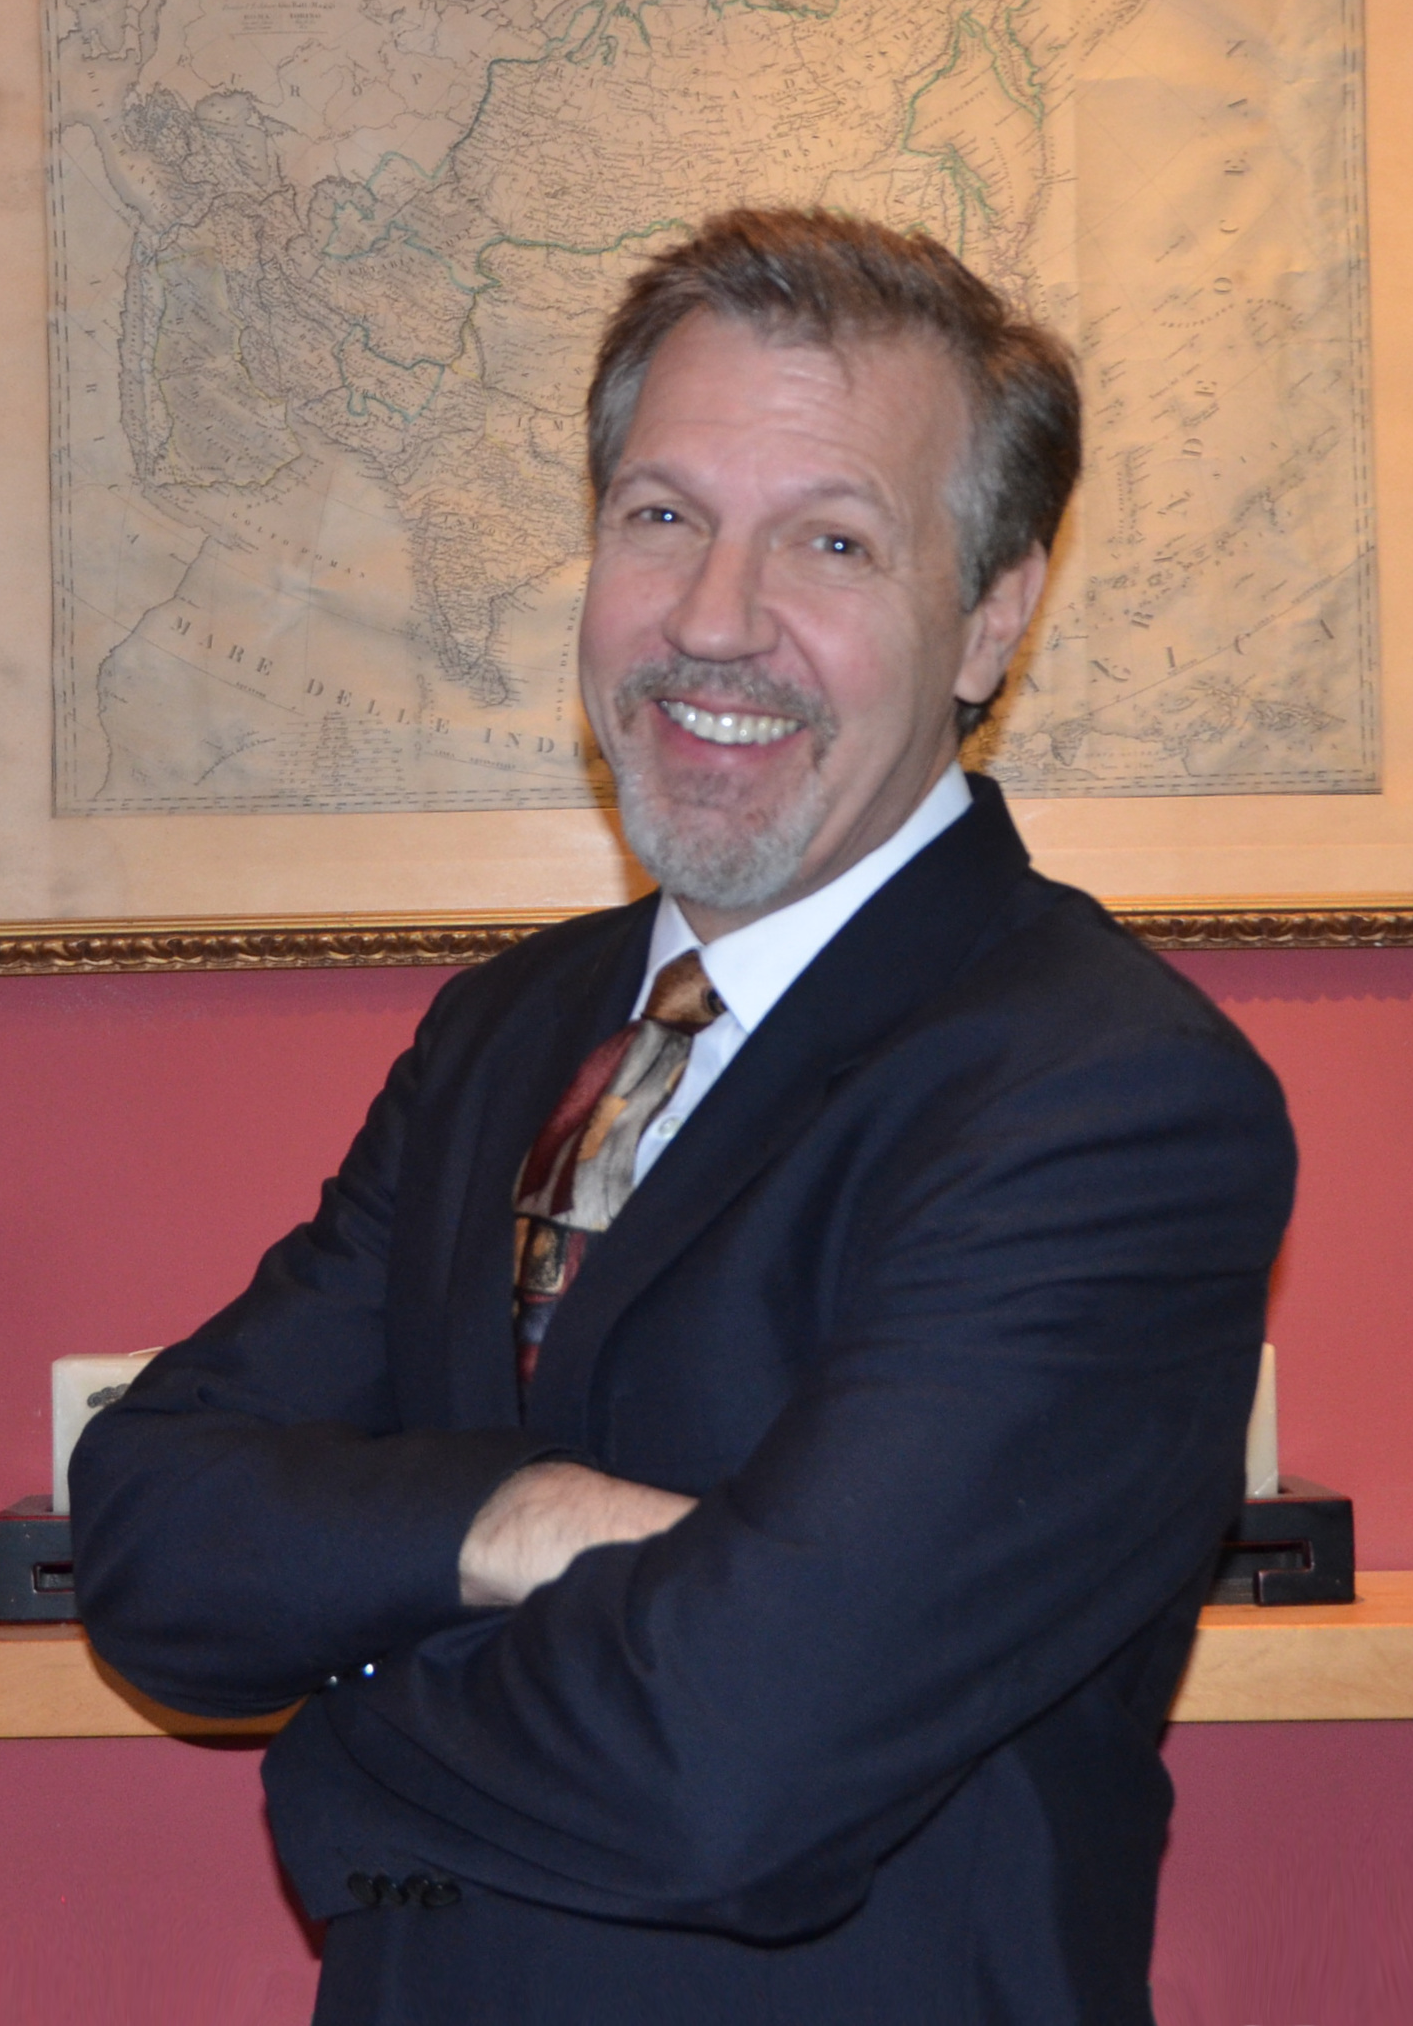 Headshot of Drew Kittel wearing a blue suit and striped necktie and standing in front of an old map of china.